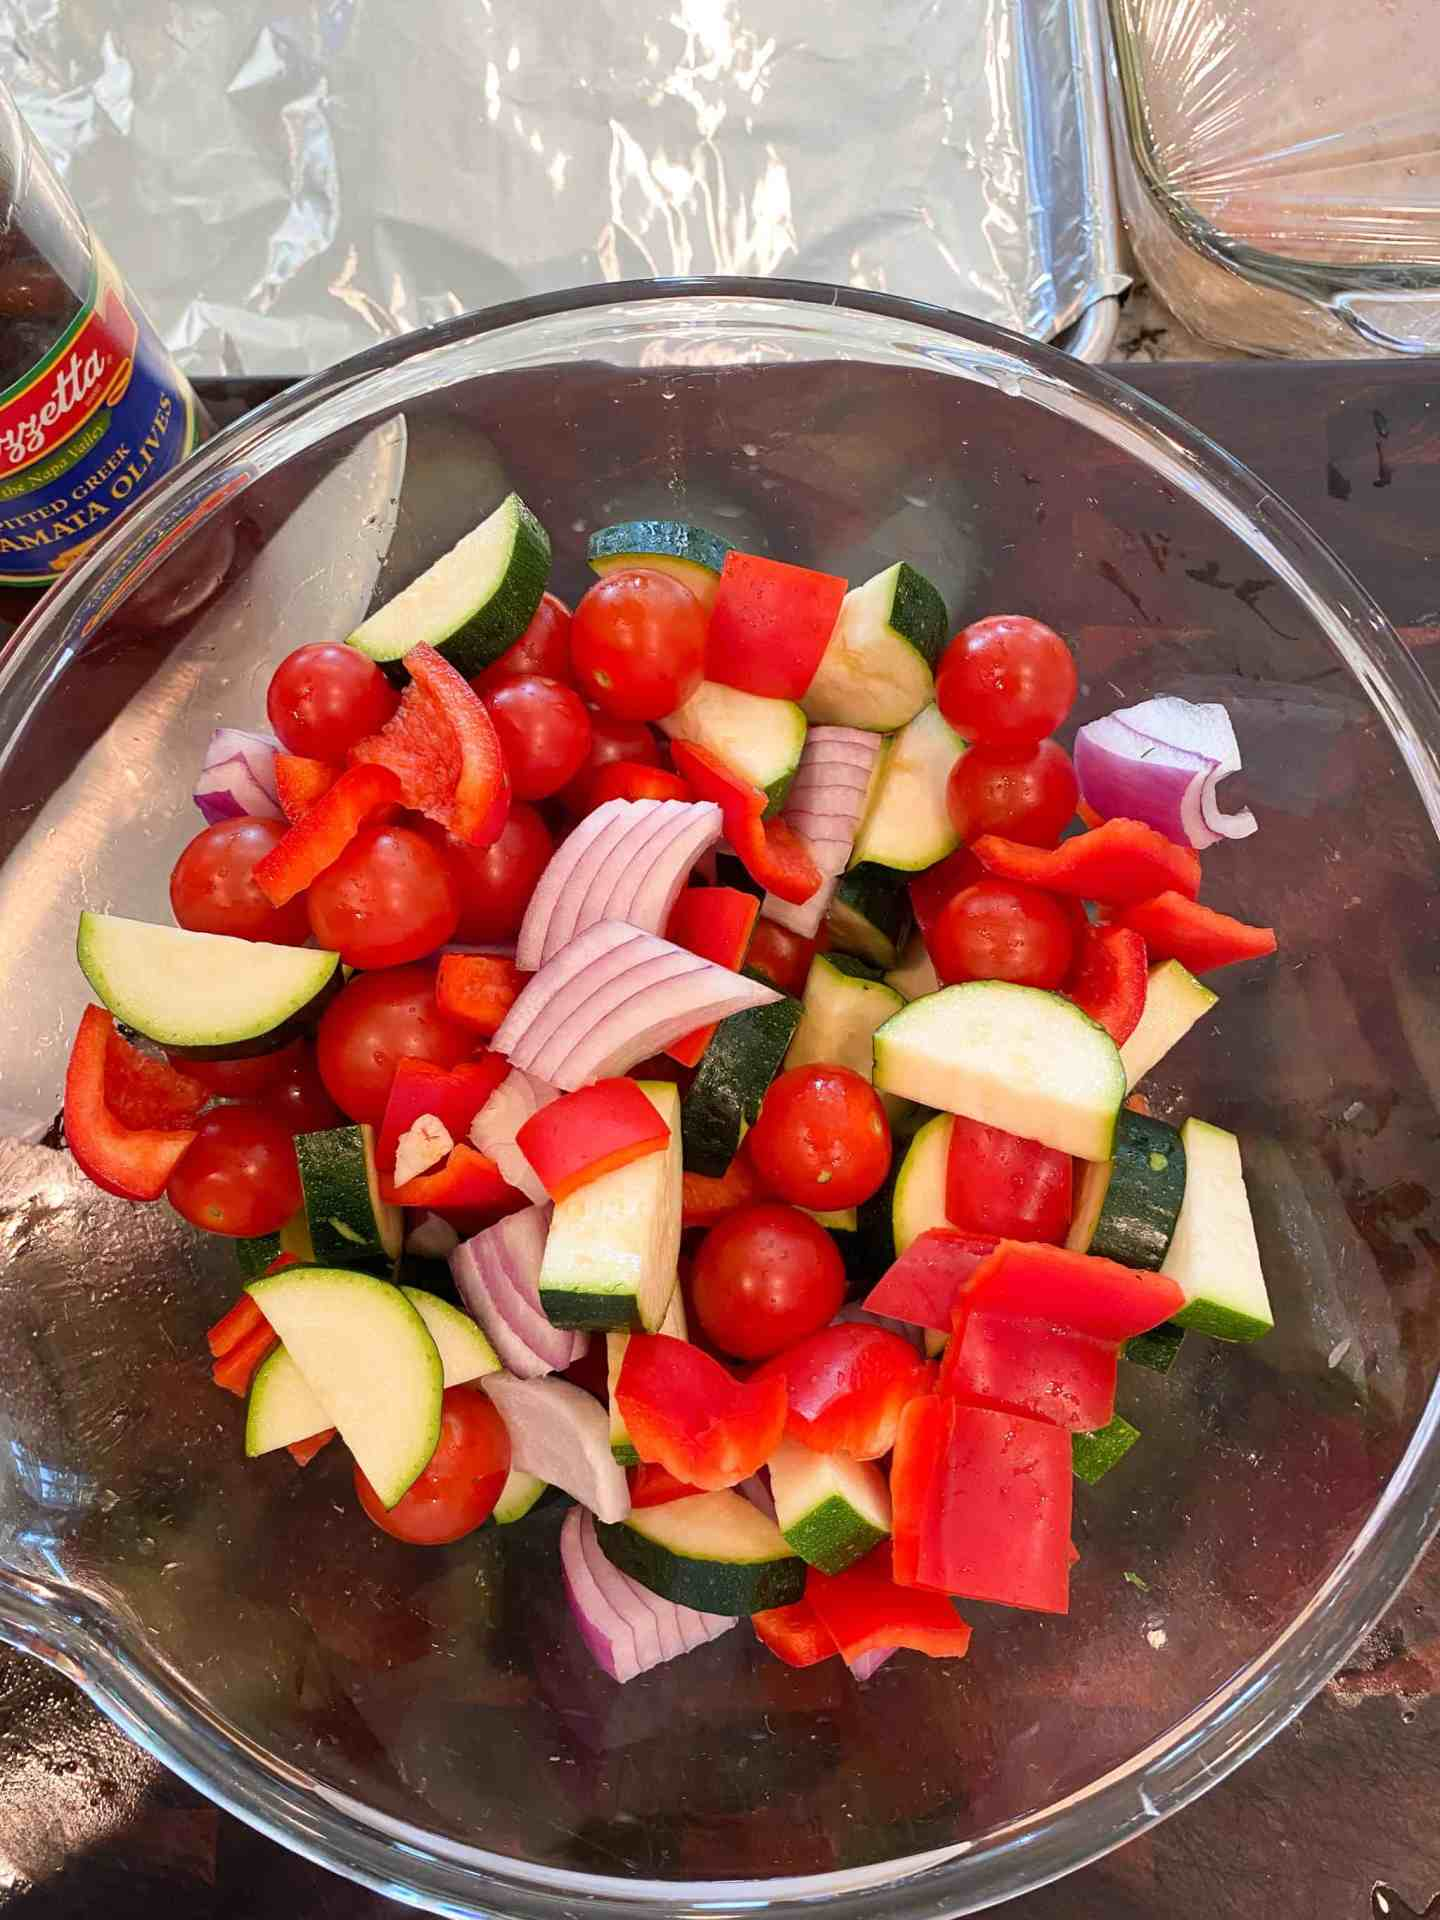 red-onion-zucchini-cherry-tomatoes-and-red-bell-pepper-to-roast